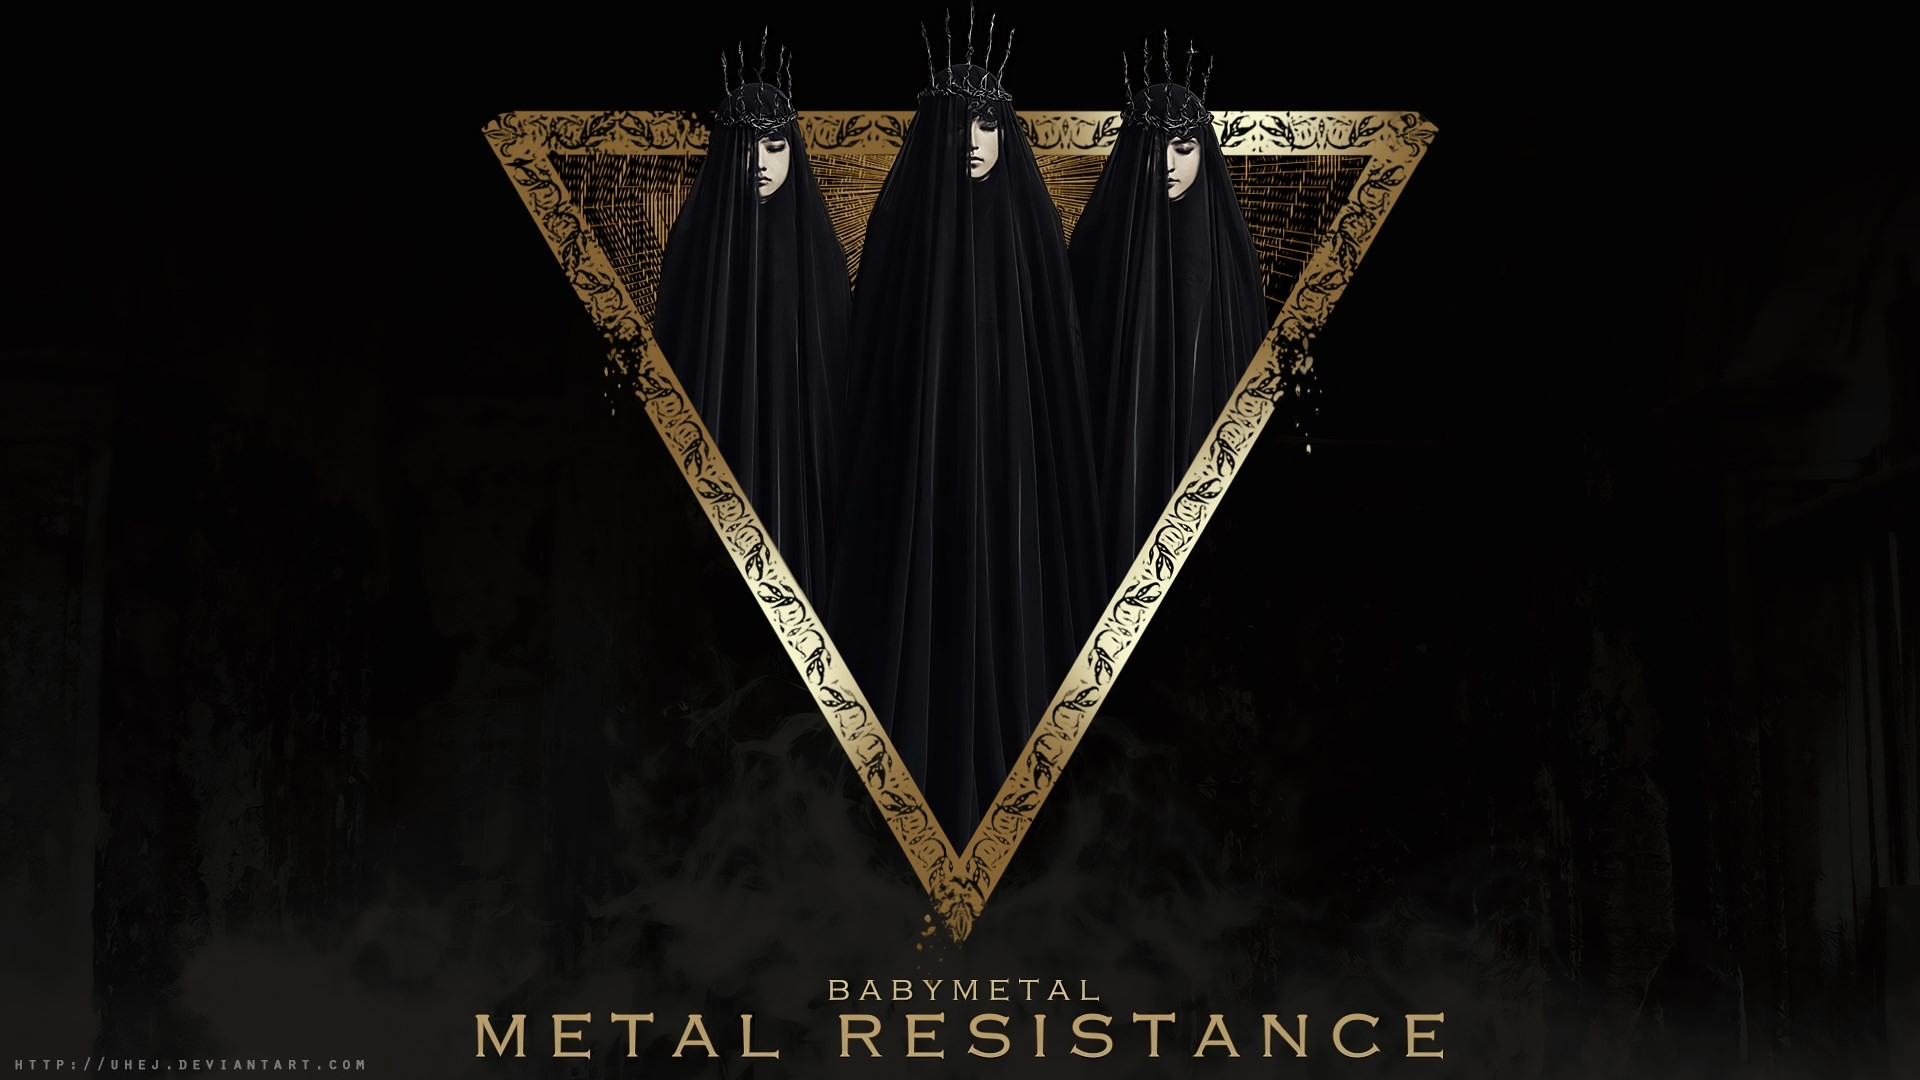 beautiful pictures of babymetal